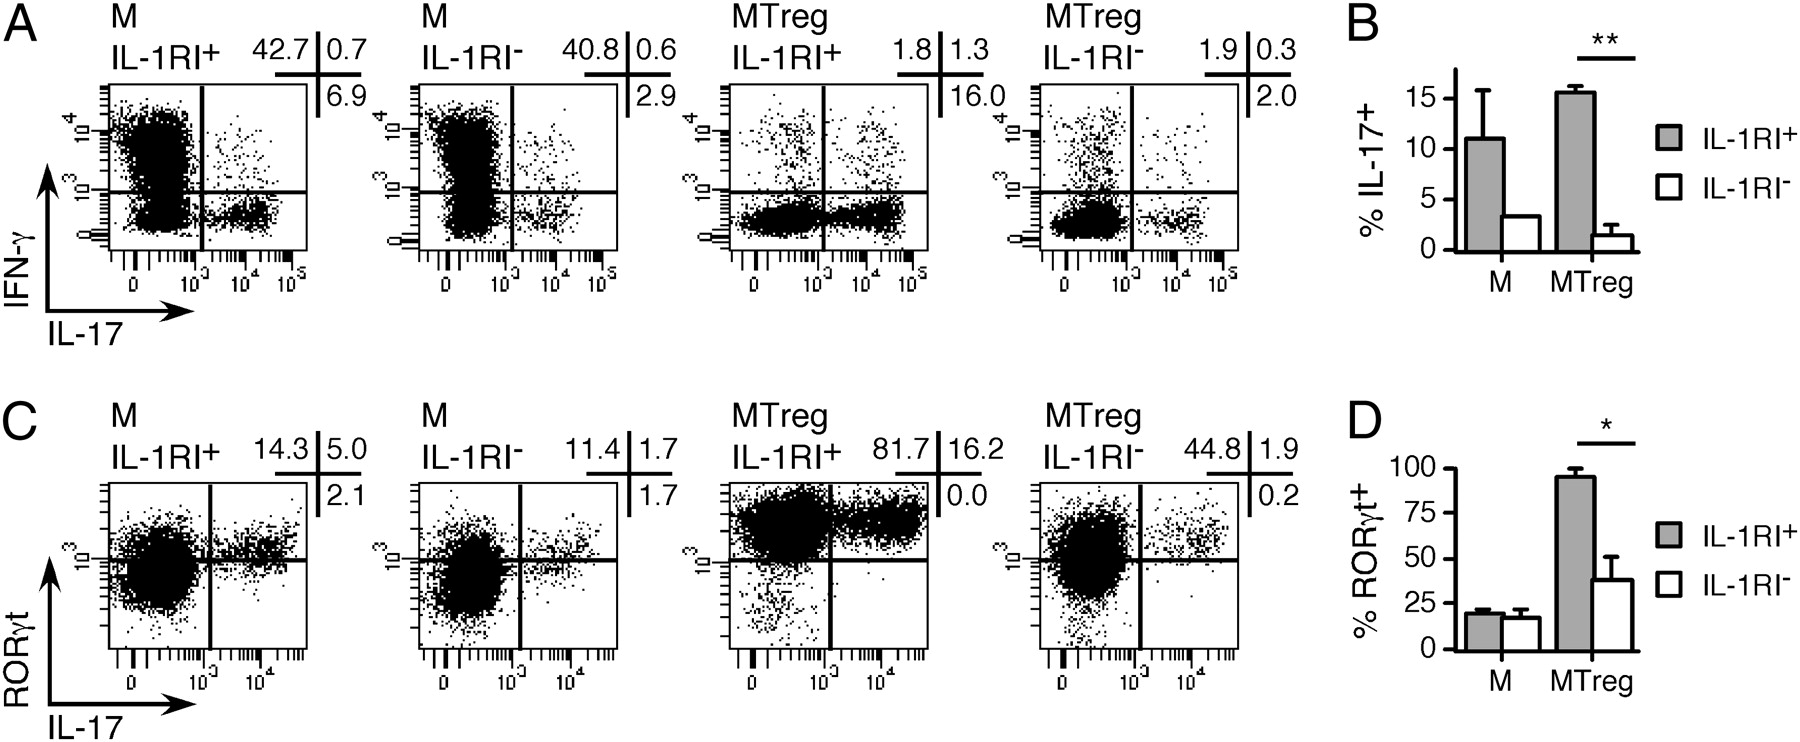 Ex Vivo IL-1 Receptor Type I Expression in Human CD4+ T Cells